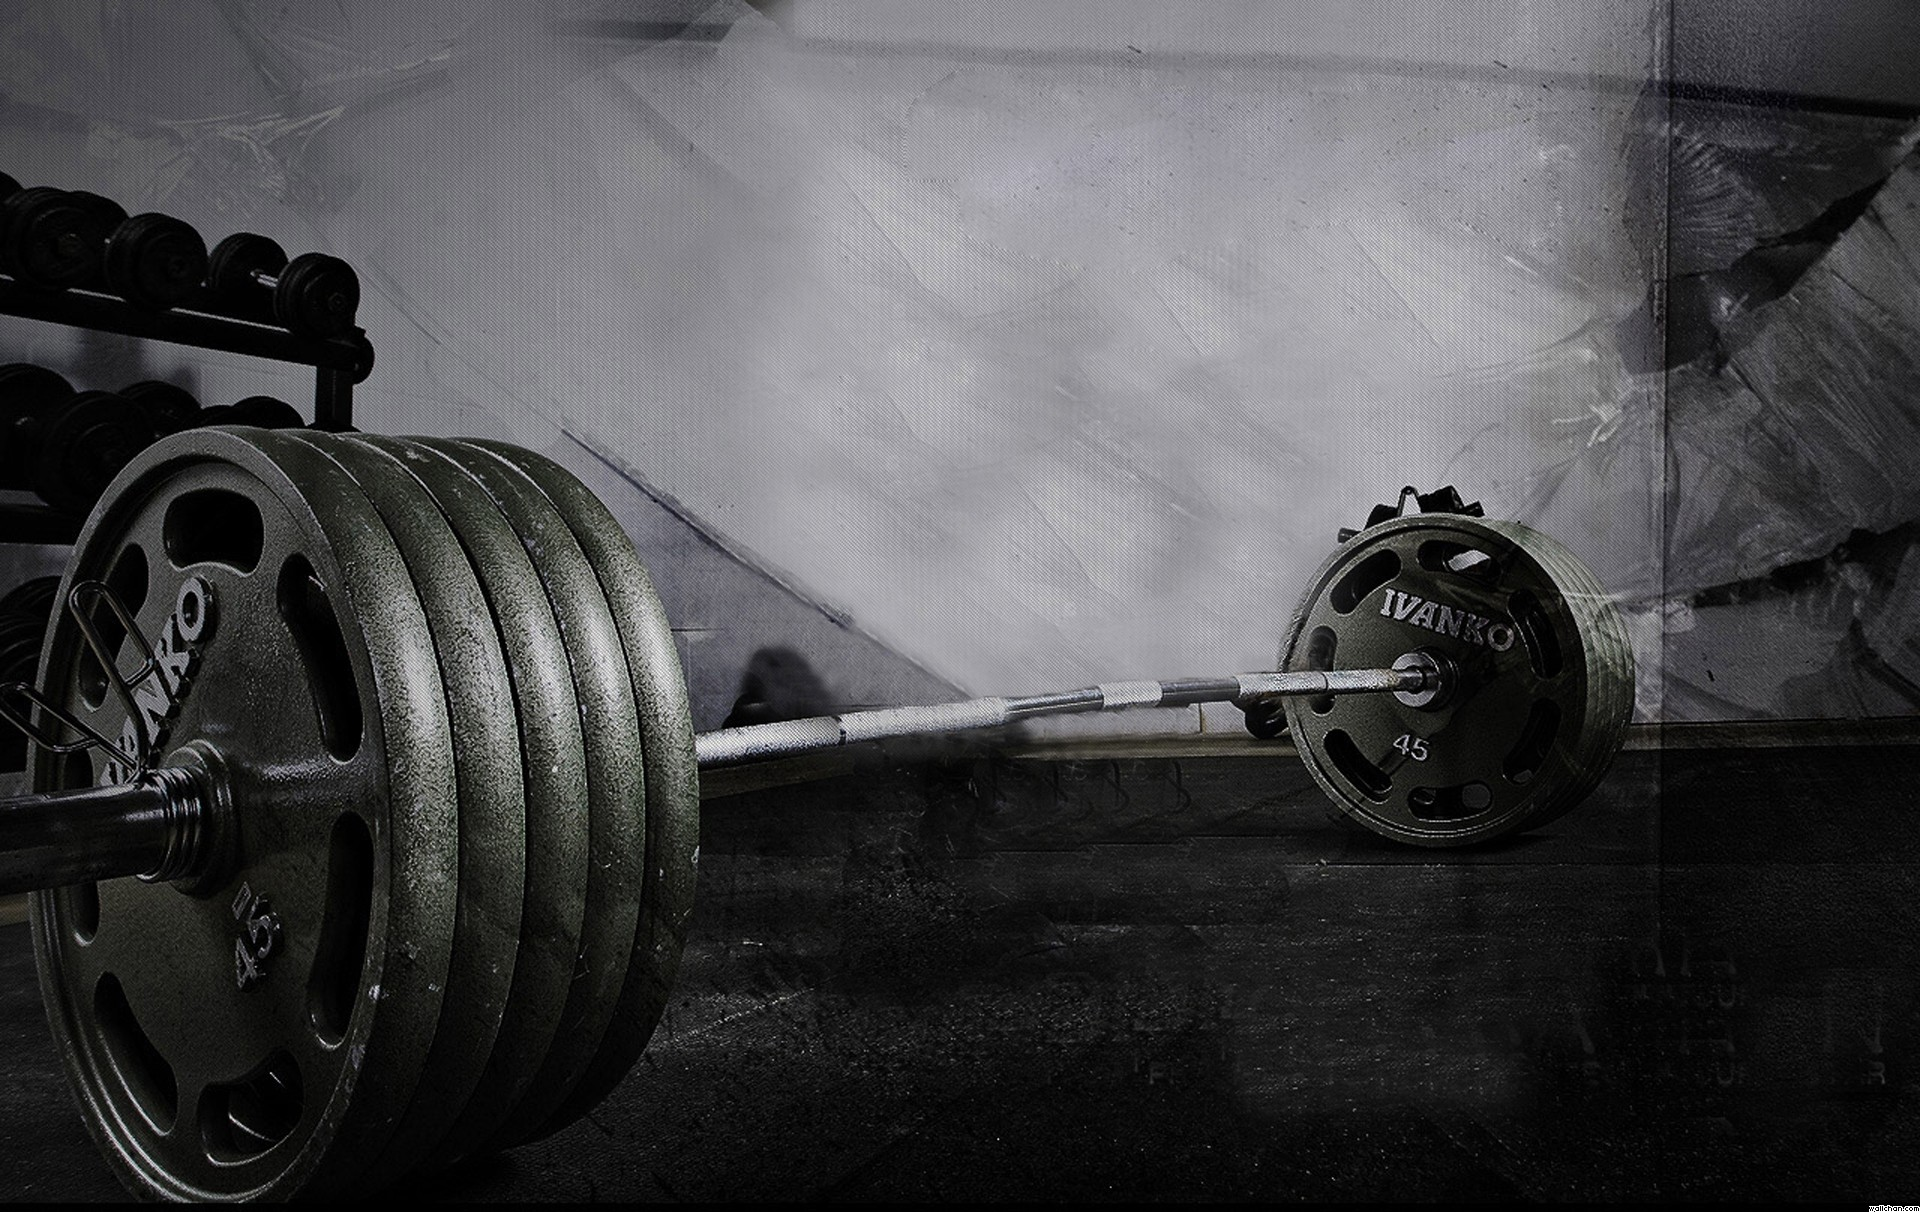 weight-lifting-wallpaper-weight-bar-workout-hd -size-1920×1080-resolutions-image